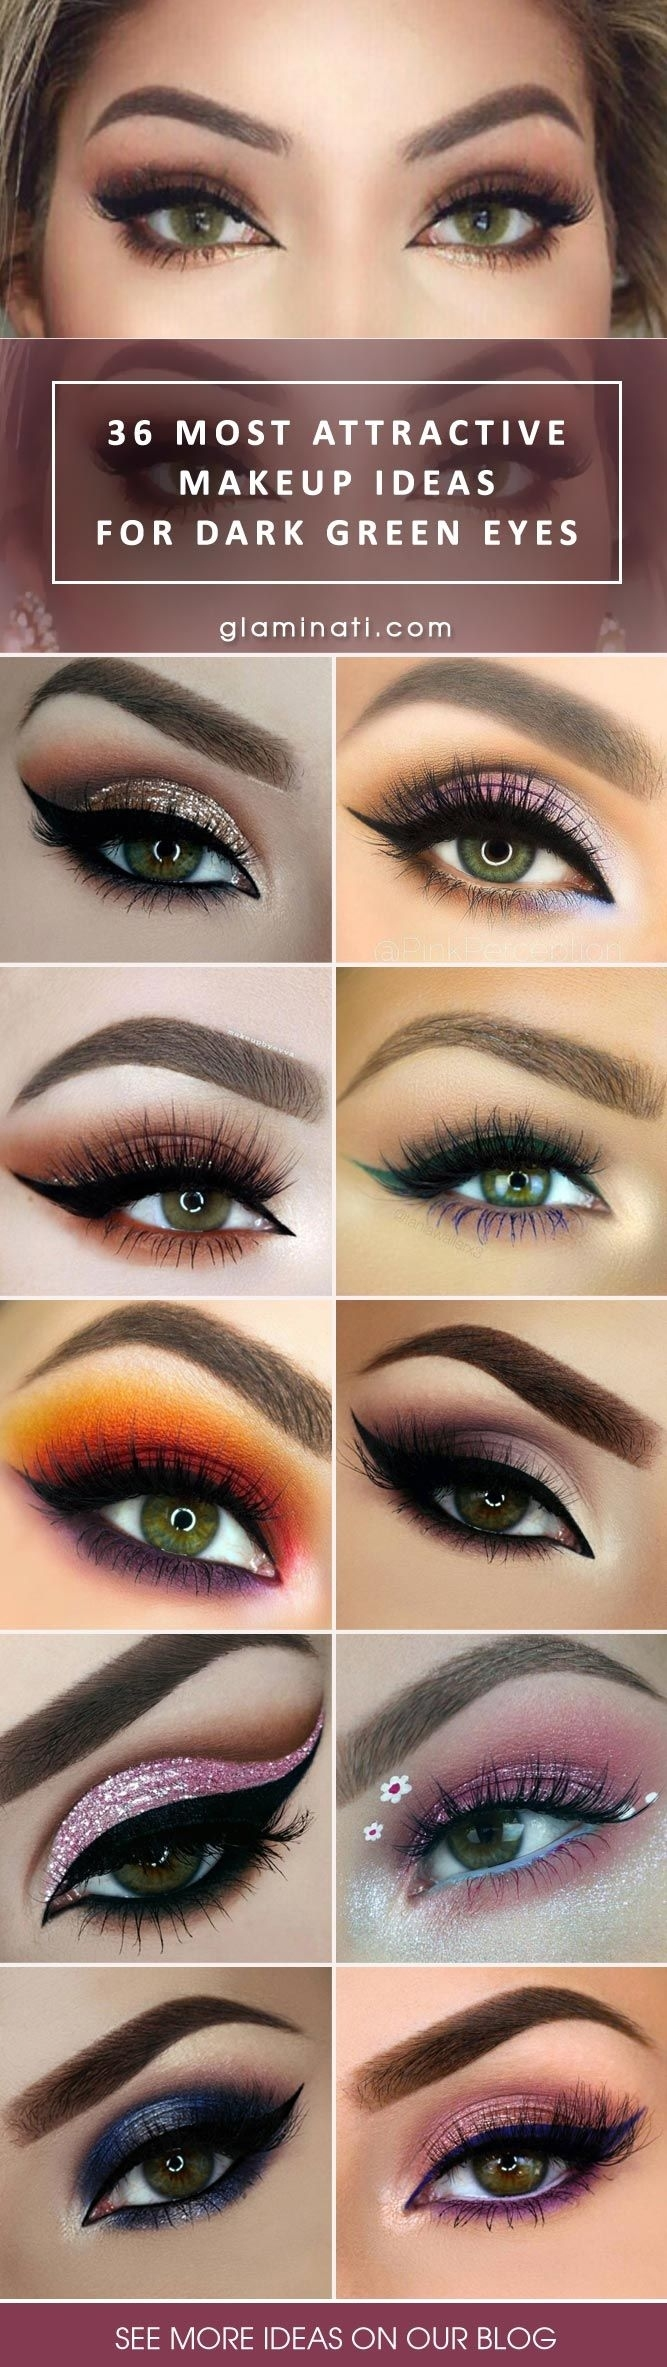 42 Most Attractive Makeup Ideas For Dark Green Eyes | Makeup intended for What Color Eyeshadow For Dark Green Eyes